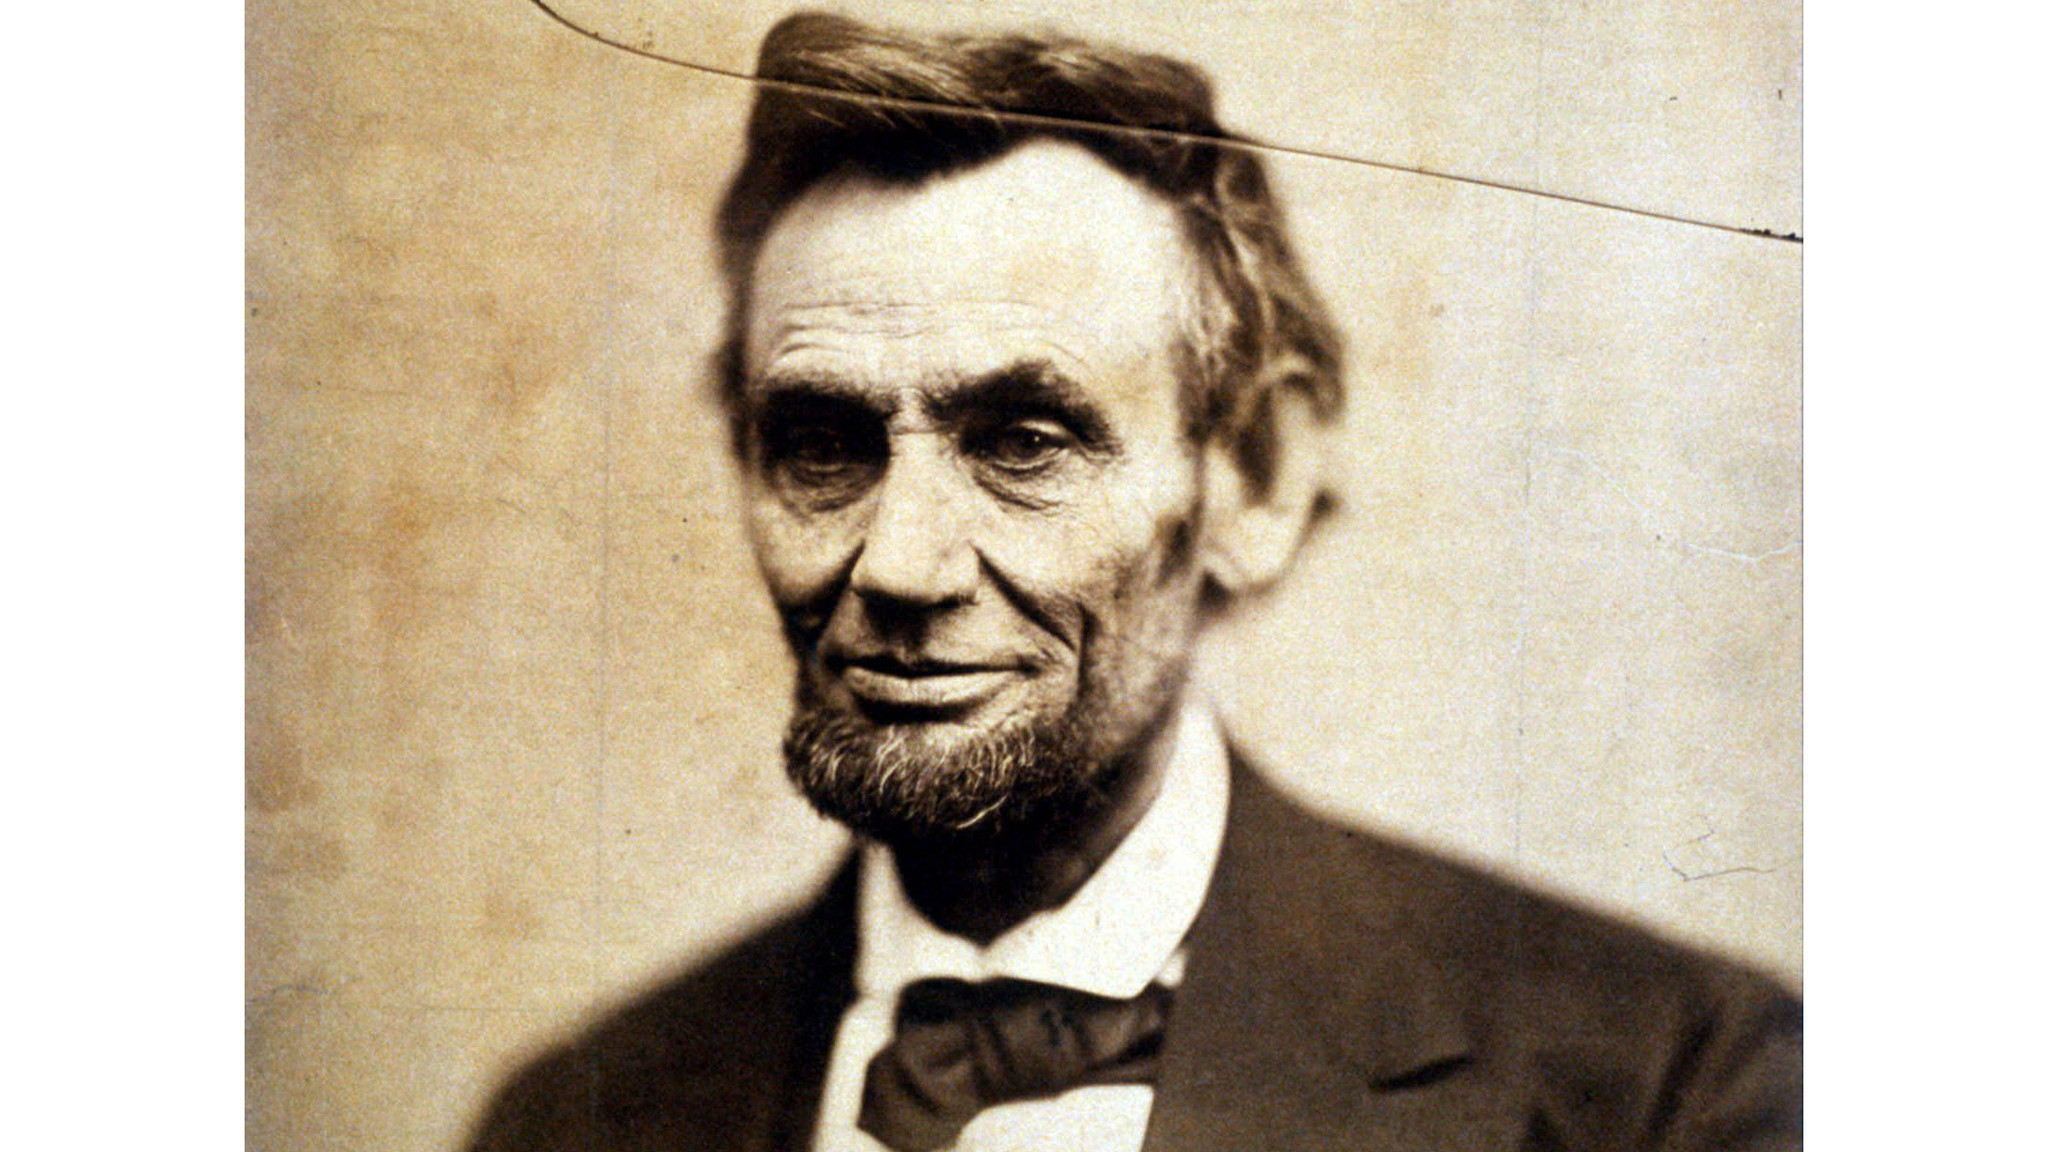 the life and writings of abraham lincoln abraham lincoln This bibliography of abraham lincoln is a comprehensive list of written and published works about or by abraham lincoln the life and writings of abraham lincoln.